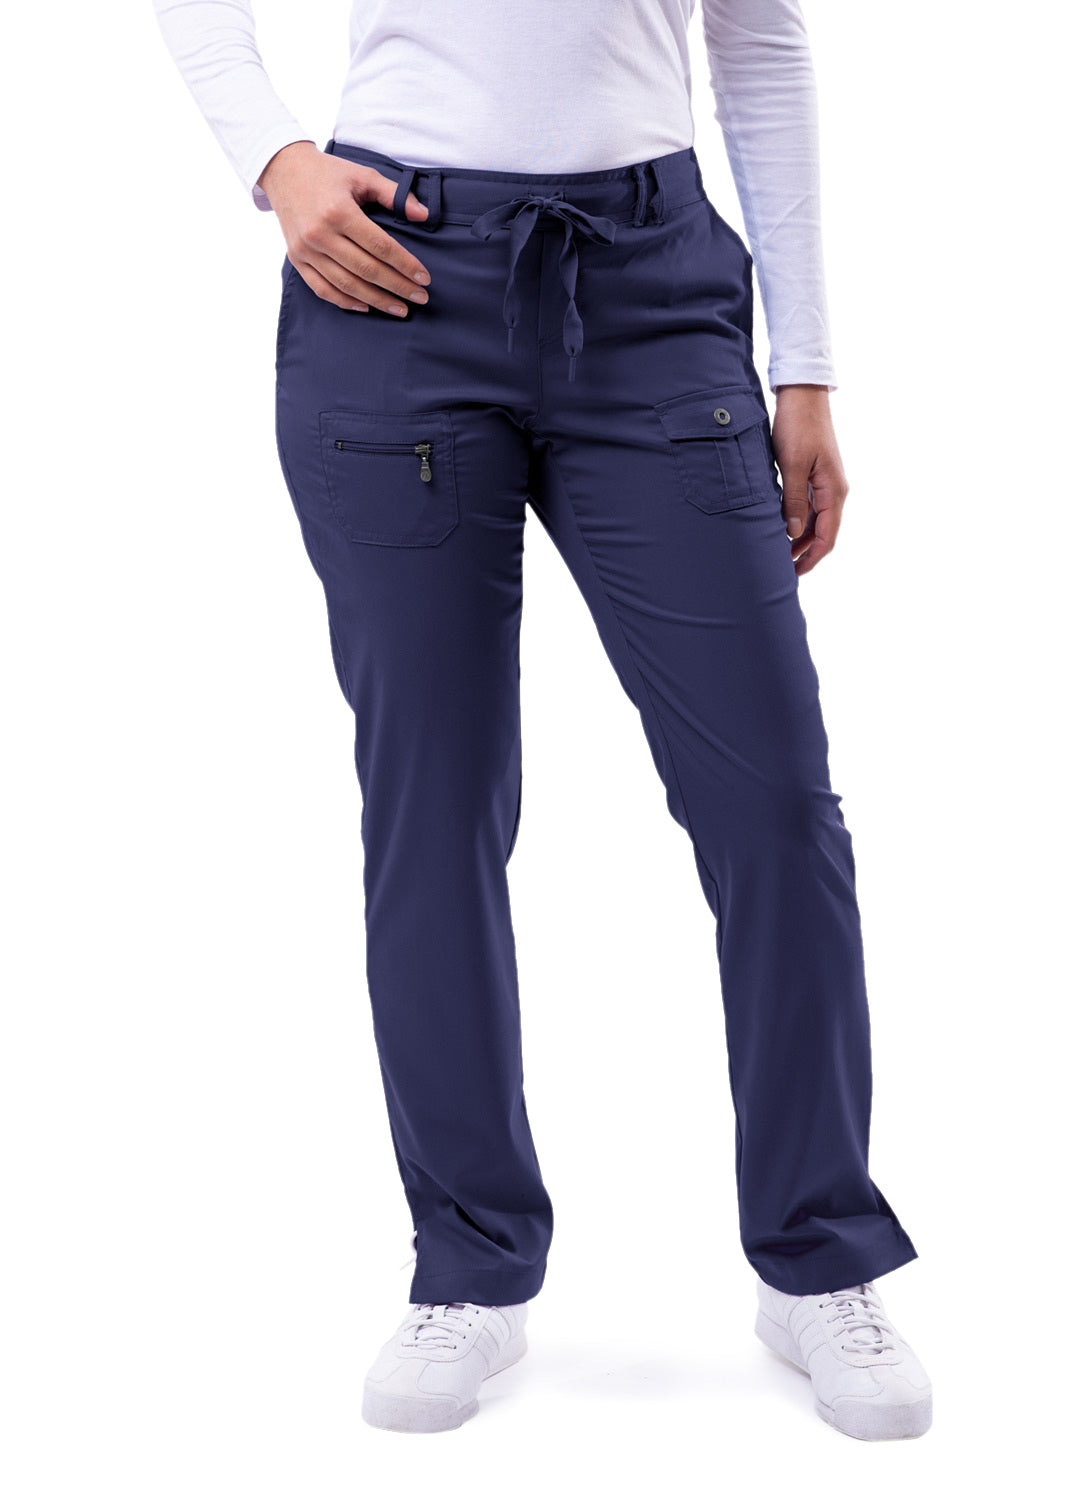 Adar Women's Pro Collection Slim Fit 6 Pocket Scrub Pant P4100